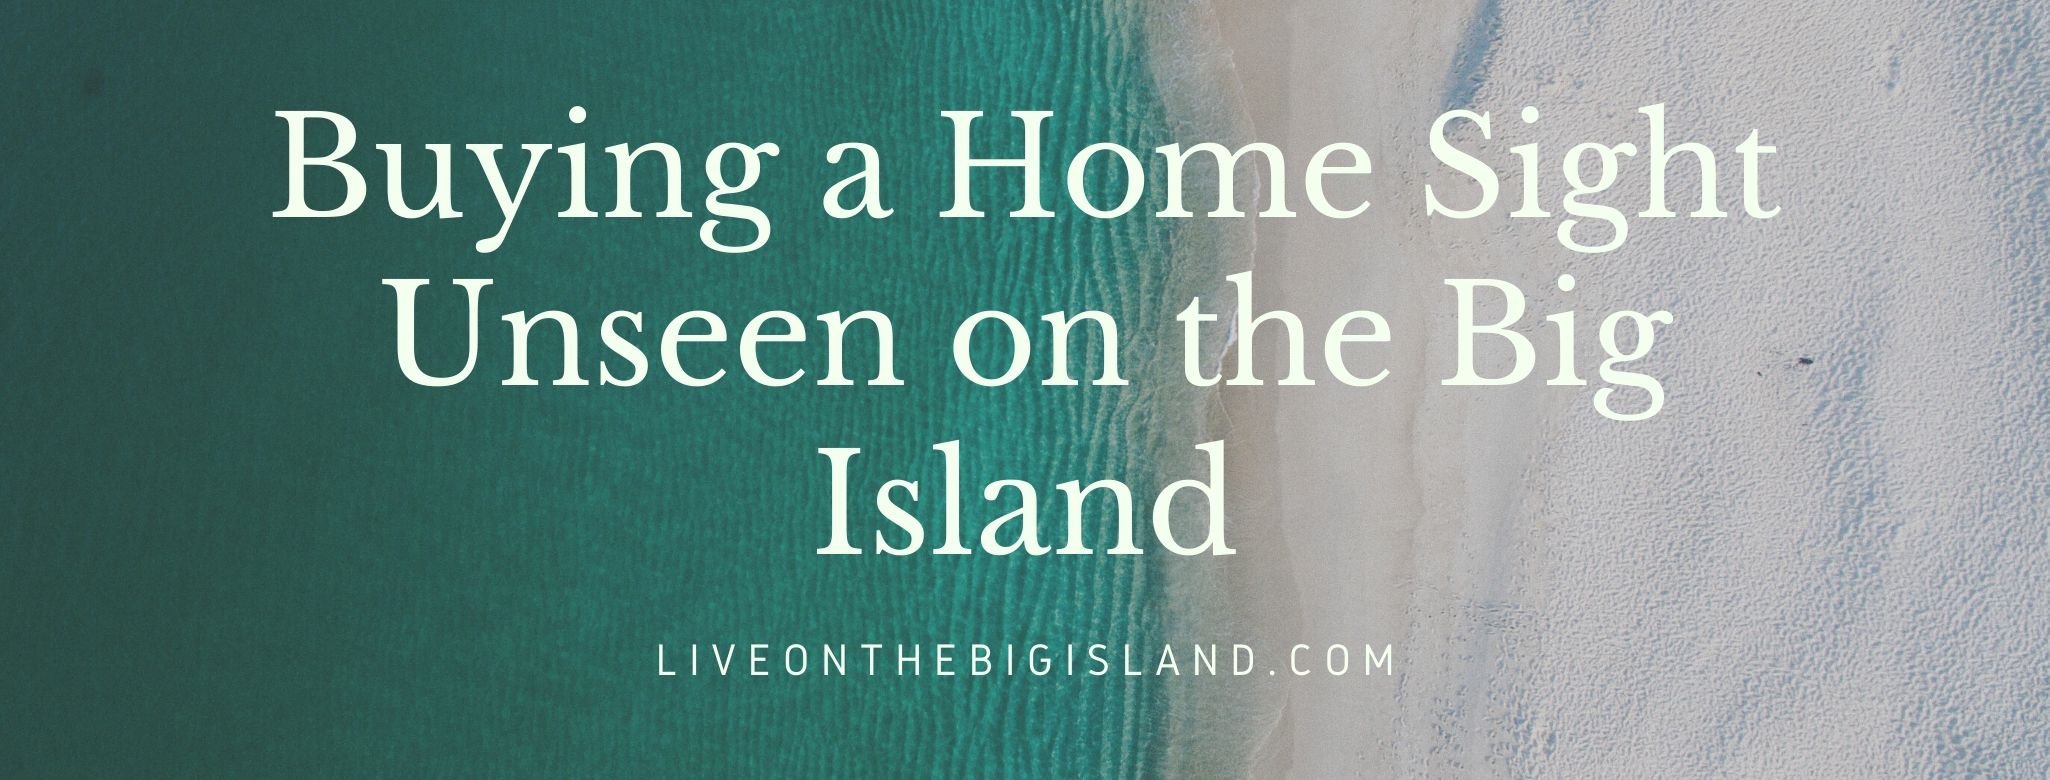 Buying a Home Sight Unseen on the Big Island